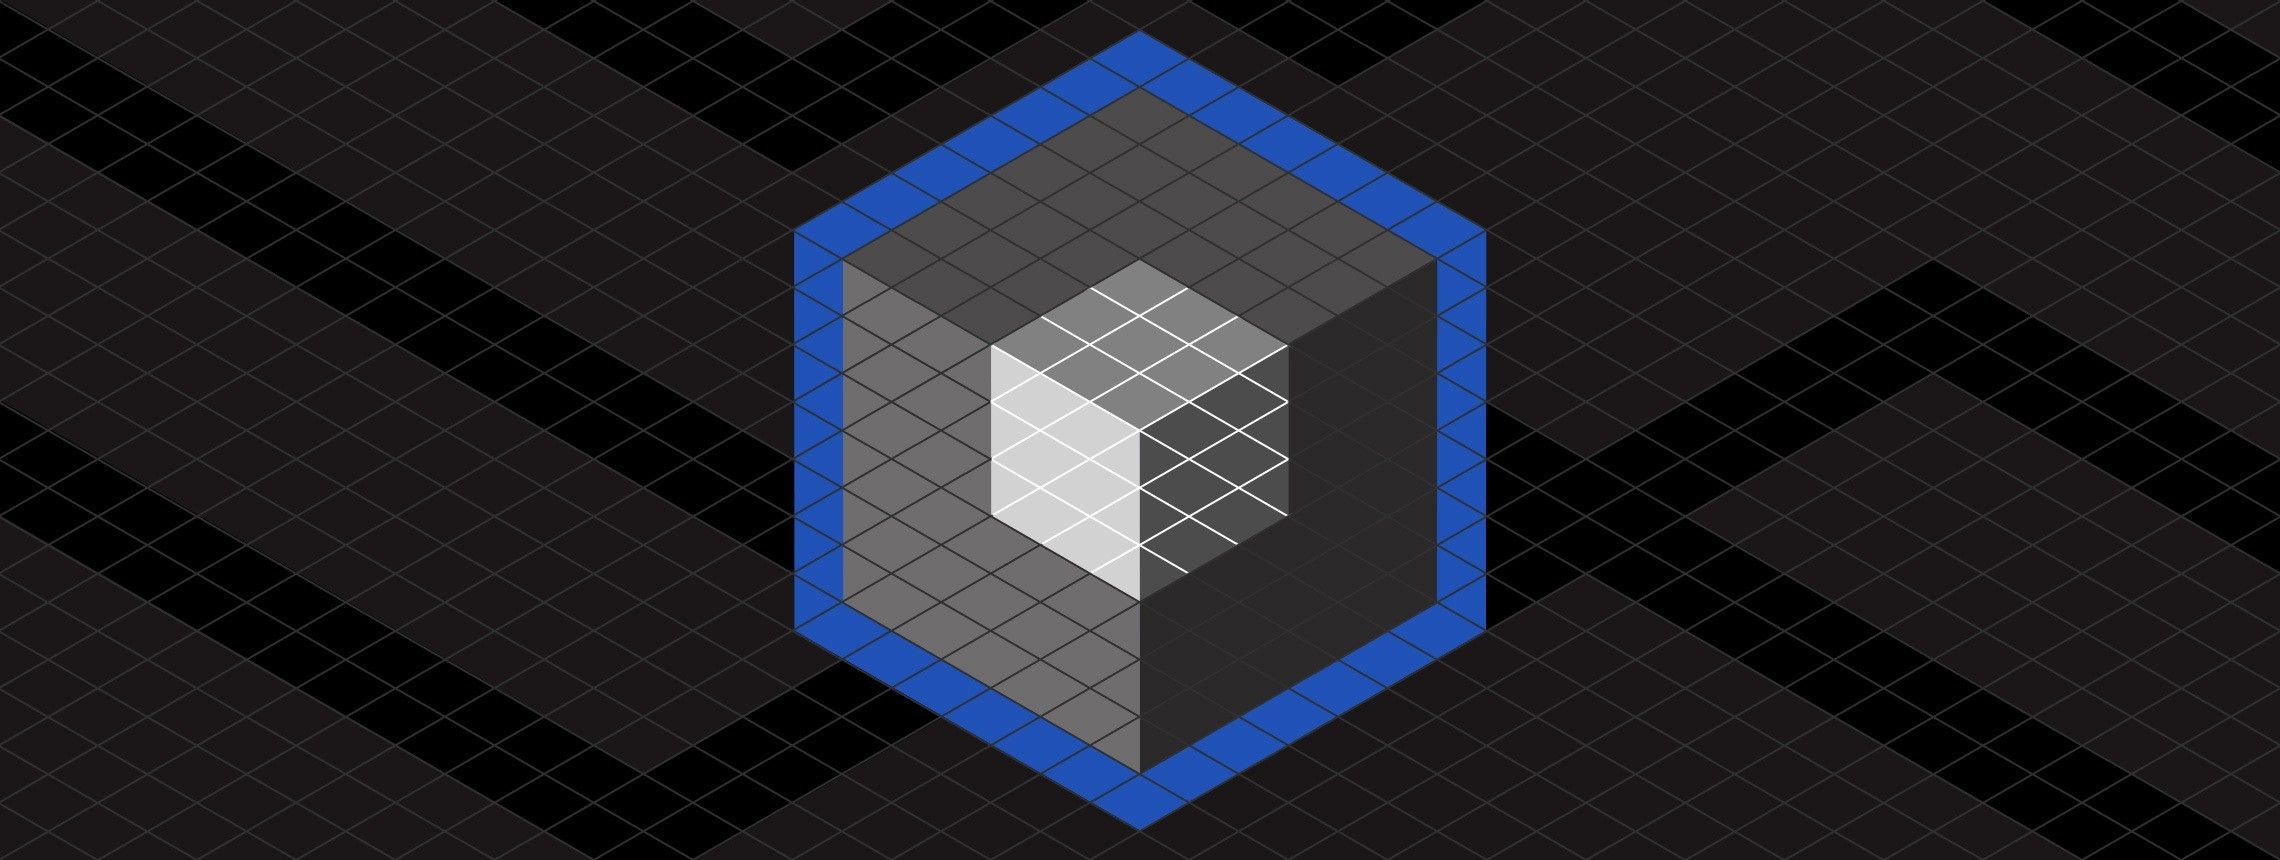 How To Make An Isometric Grid In Photoshop In 2020 Isometric Grid Isometric Isometric Design